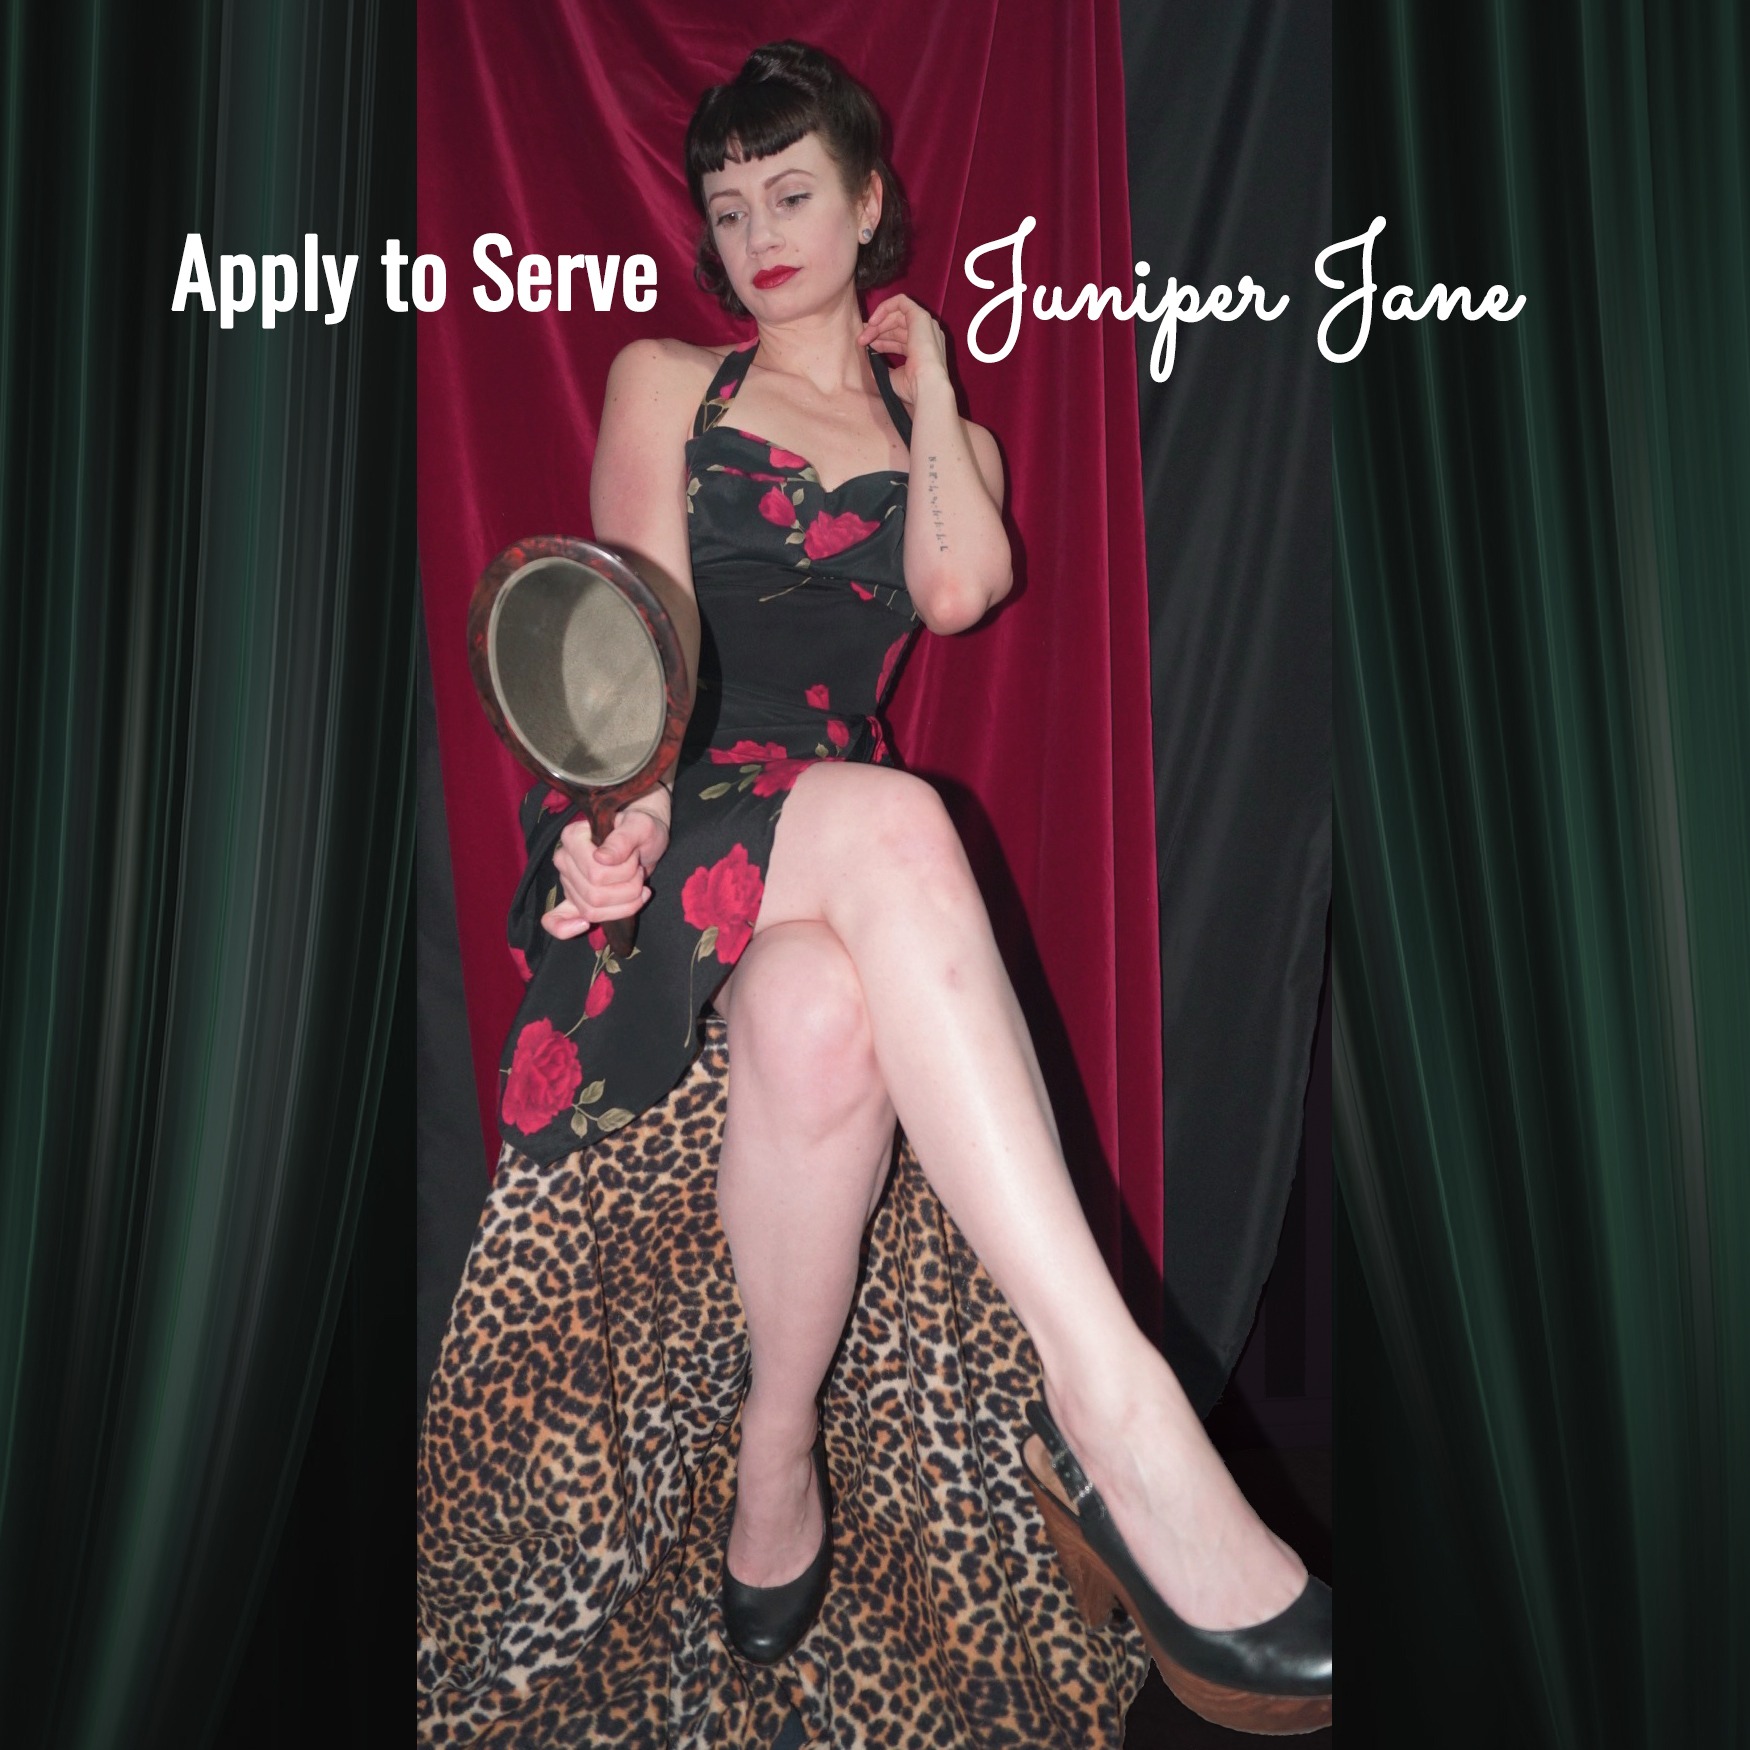 Apply to Serve or be Owned by Juniper Jane